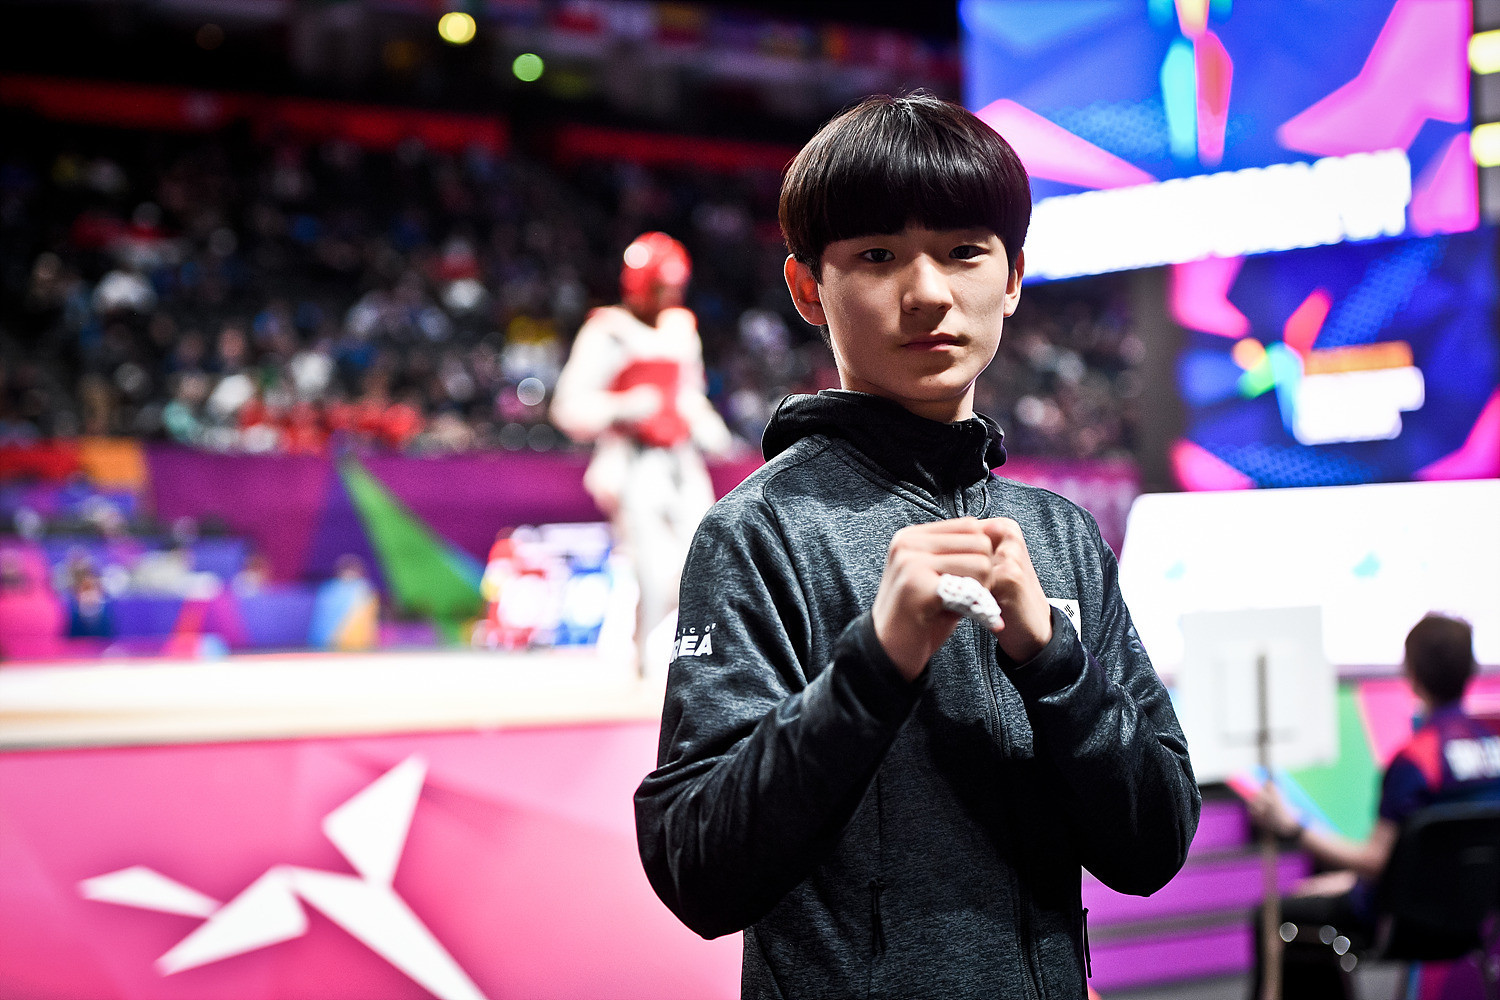 South Korea's teenage world champion targets Paris 2024 for Olympic taekwondo debut